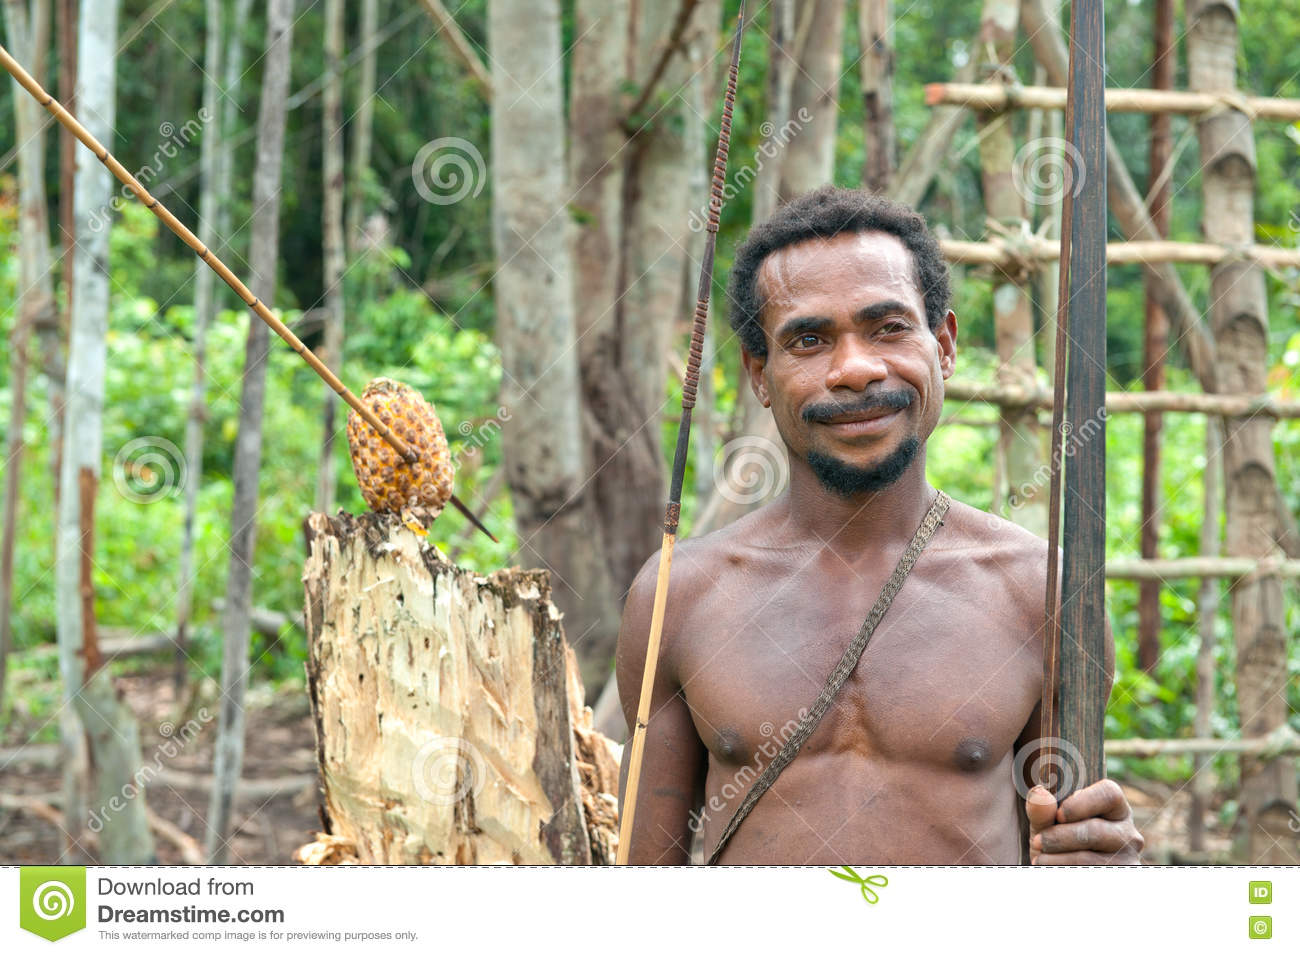 Korowai (Kolufo) Tribe Man With Bow And Arrows In The Wild Jungles